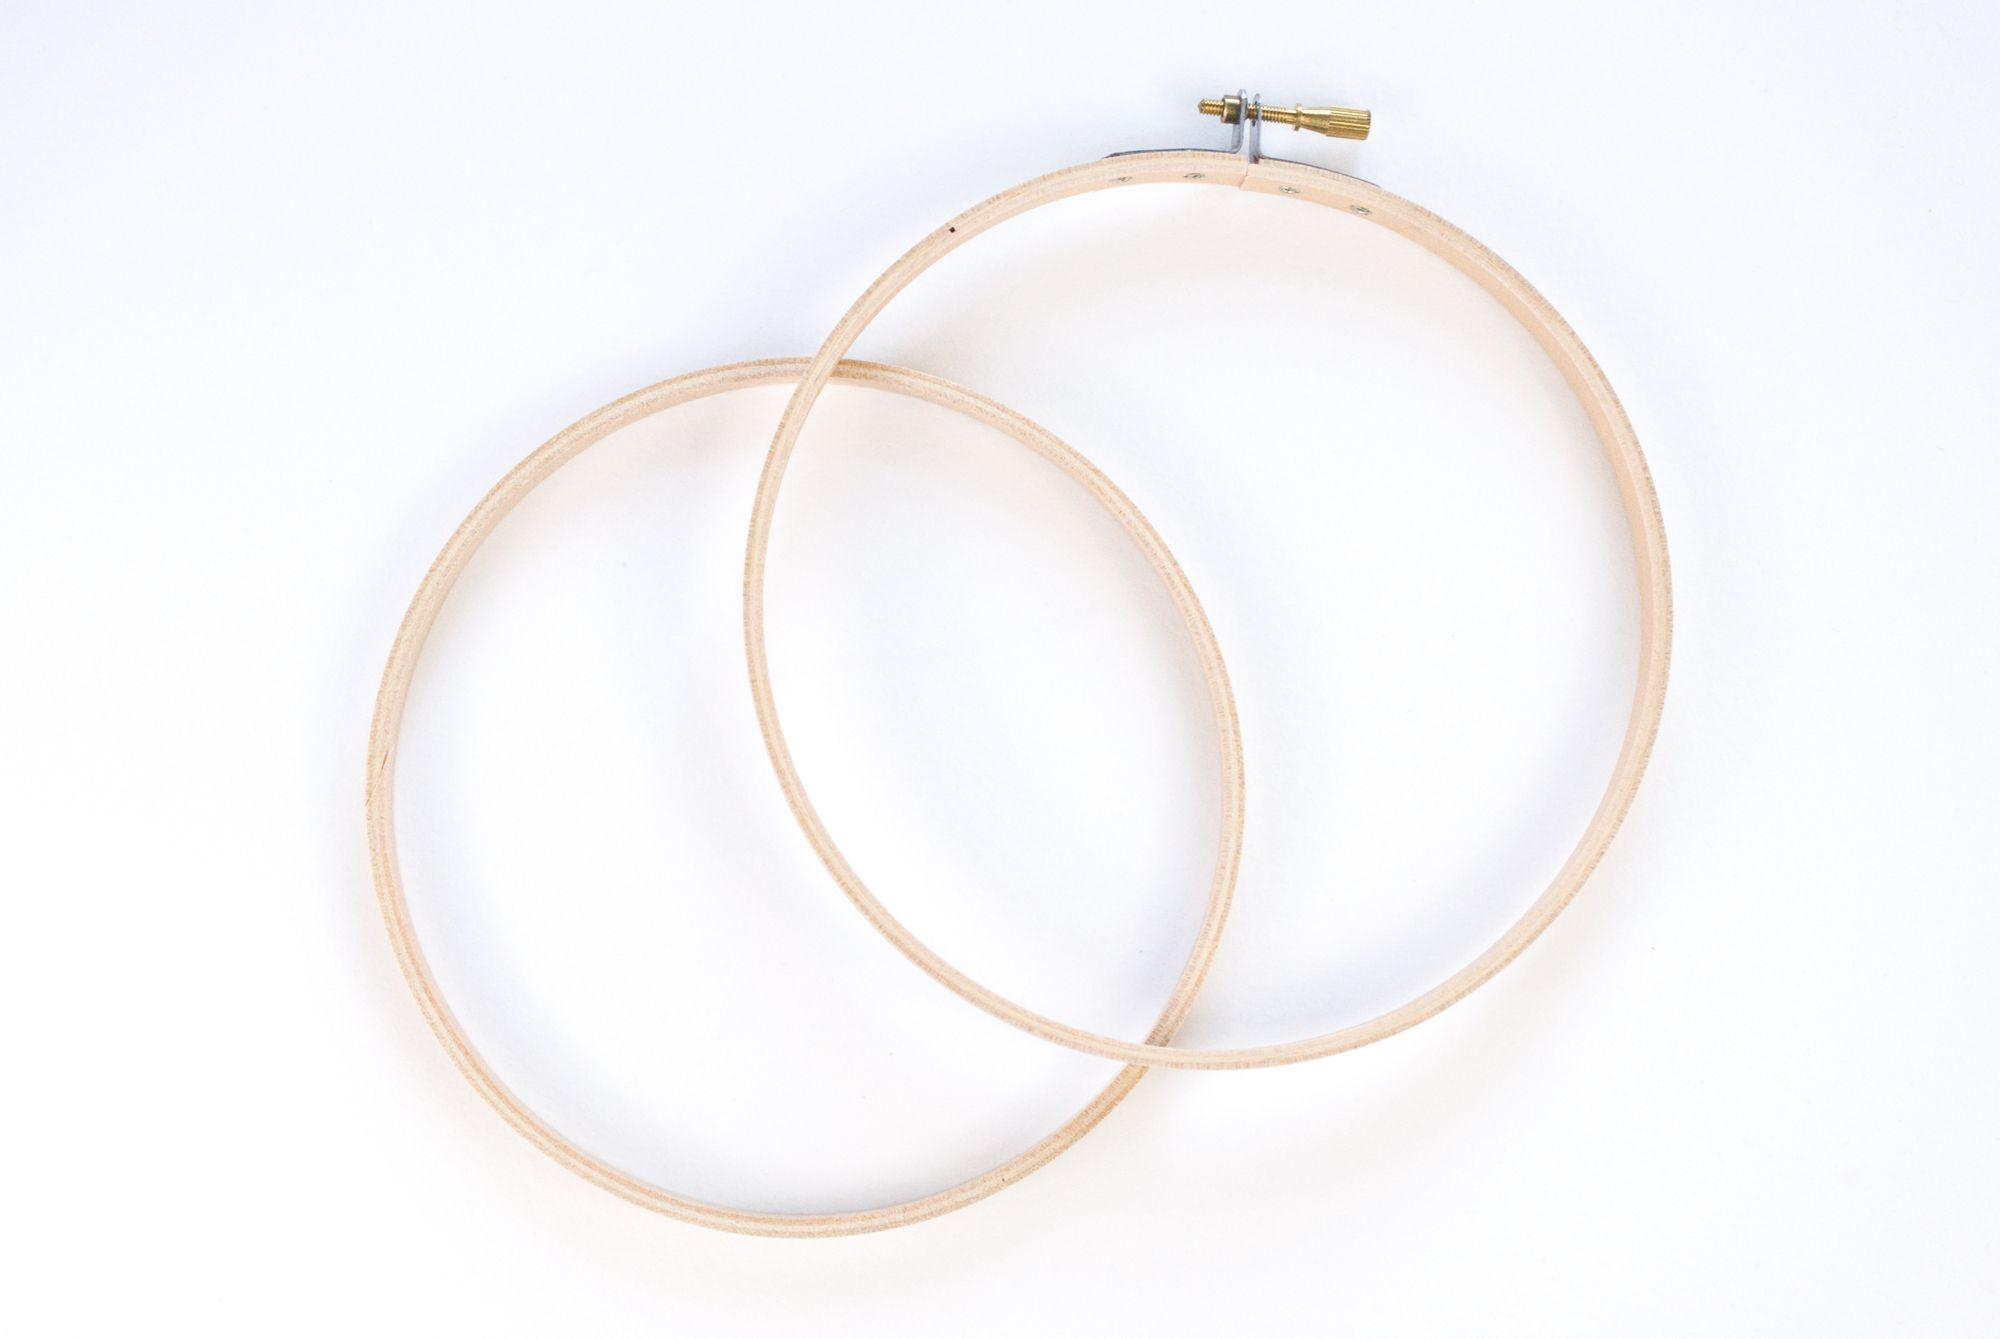 An embroidery hoop taken apart so there are two circles.